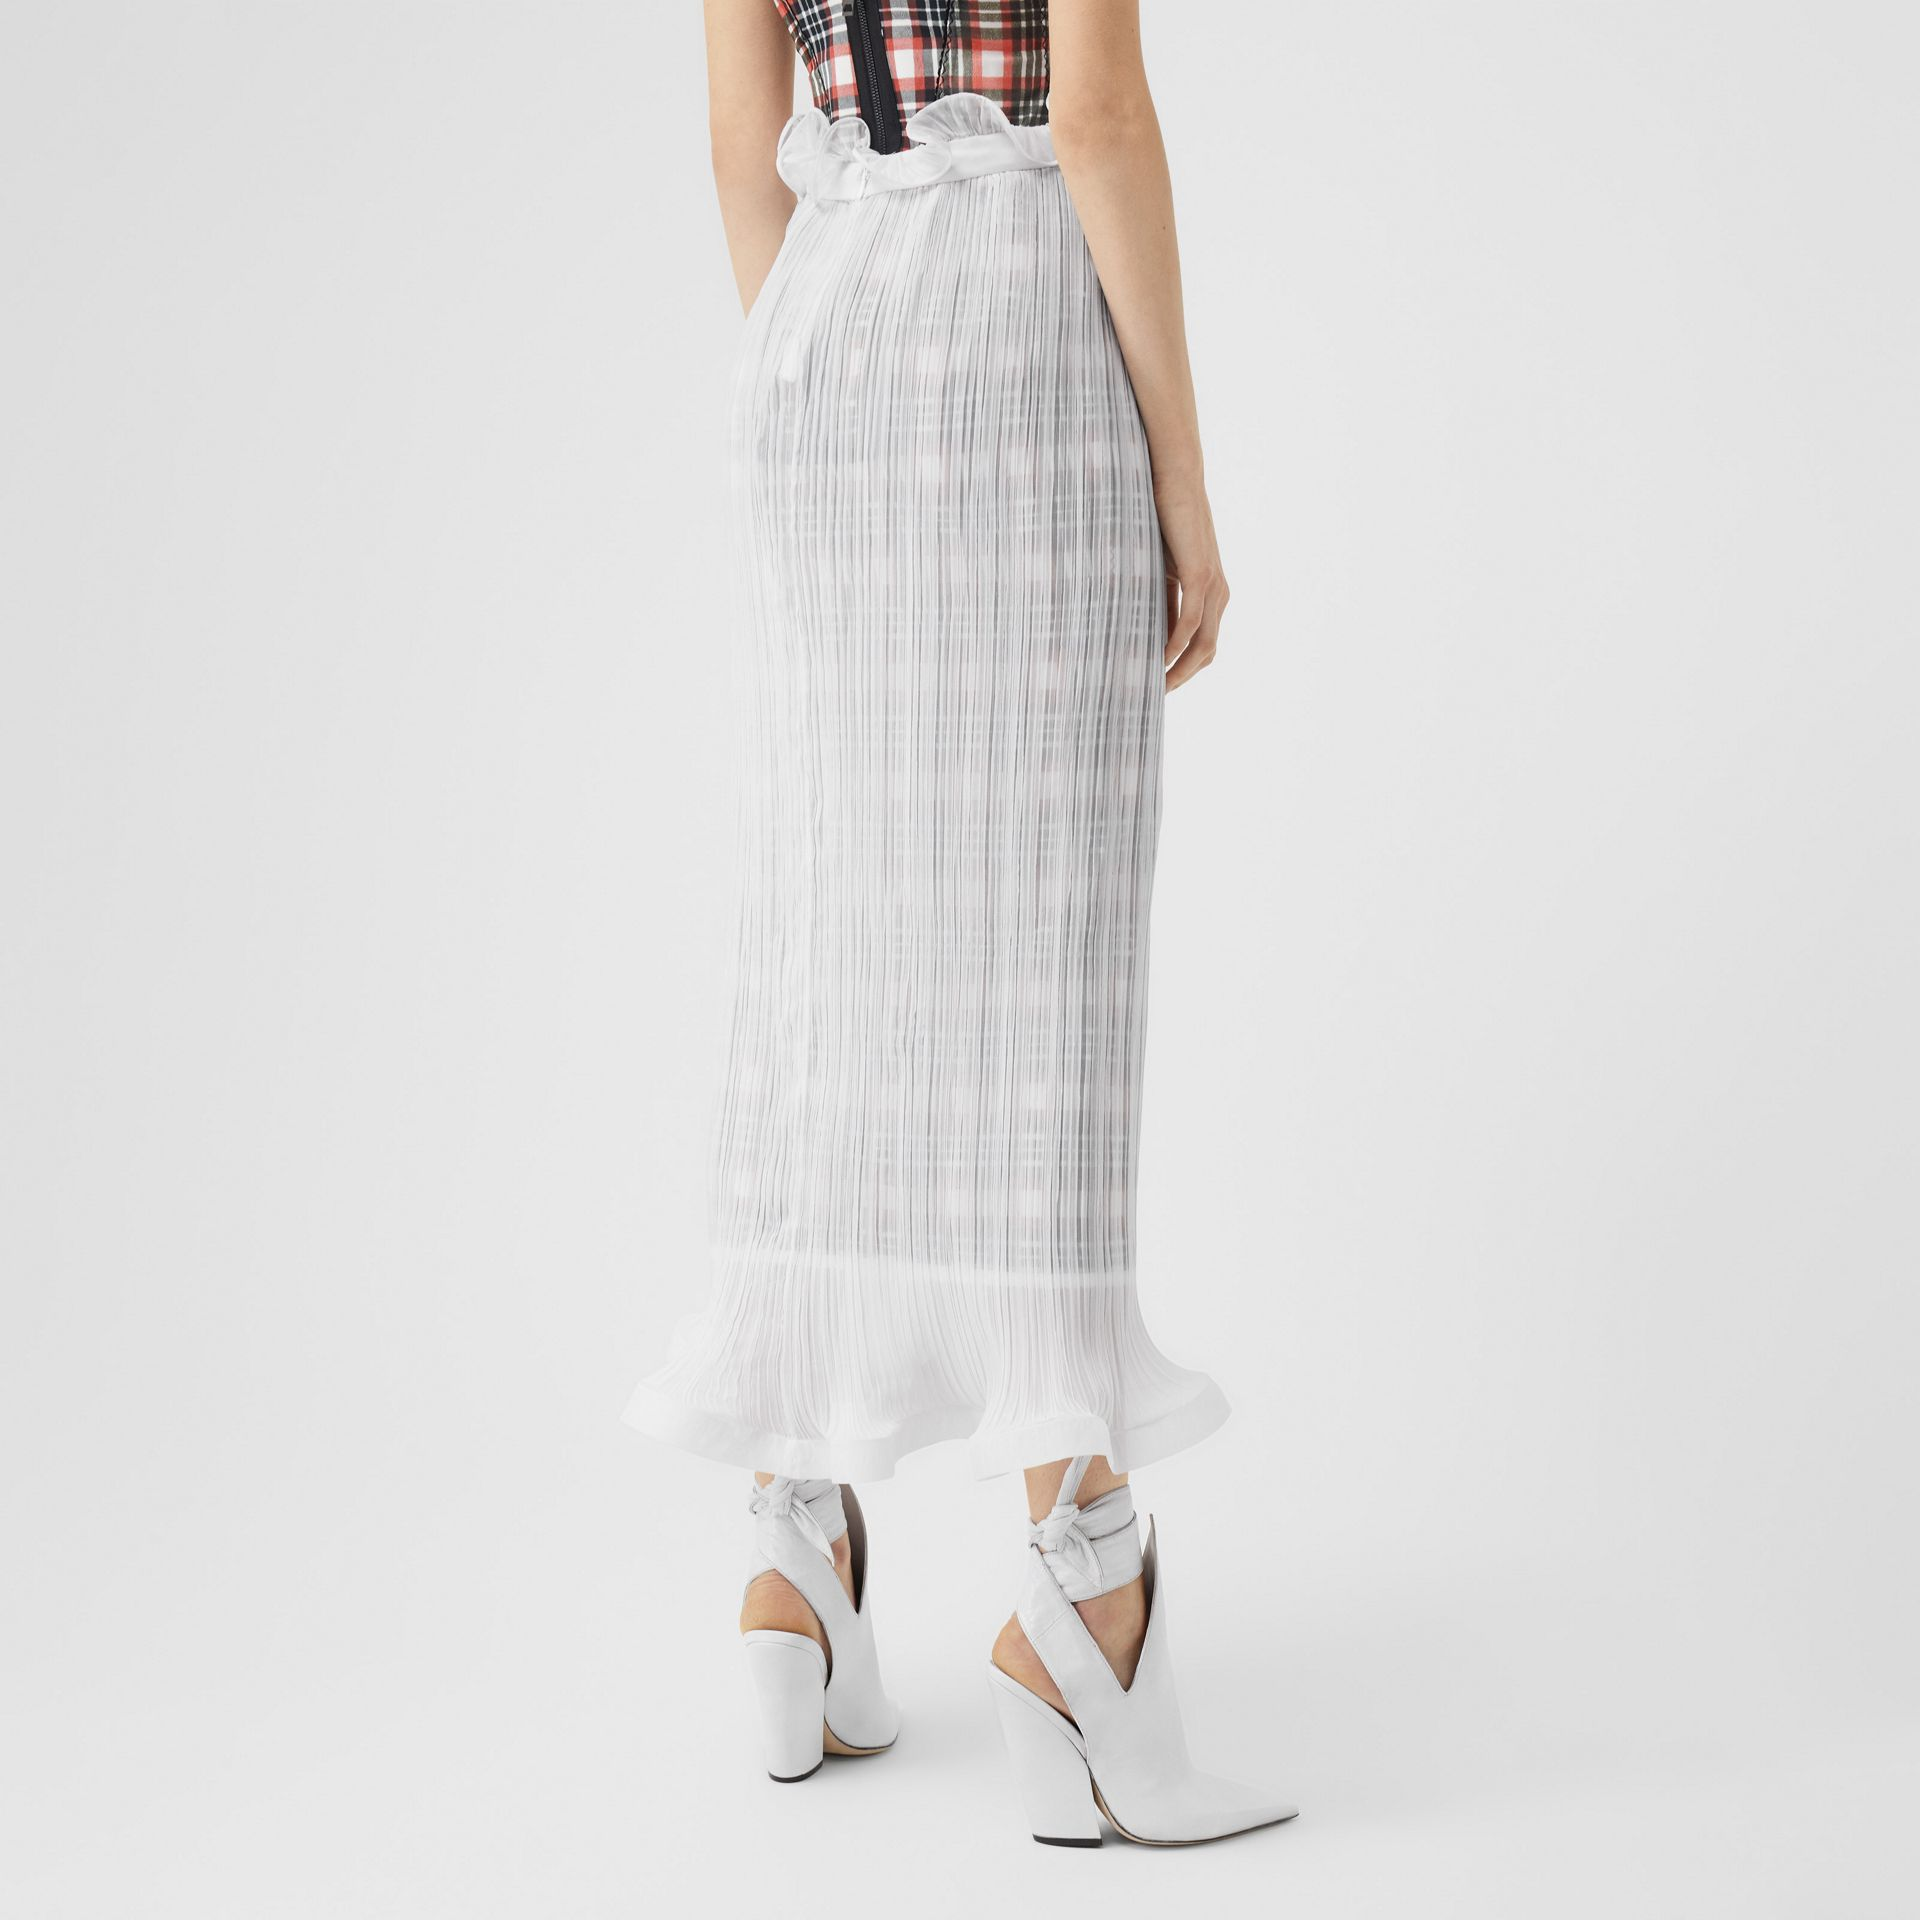 Custom Fit Ruffle Detail Chiffon Plissé Skirt in Optic White - Women | Burberry - gallery image 1